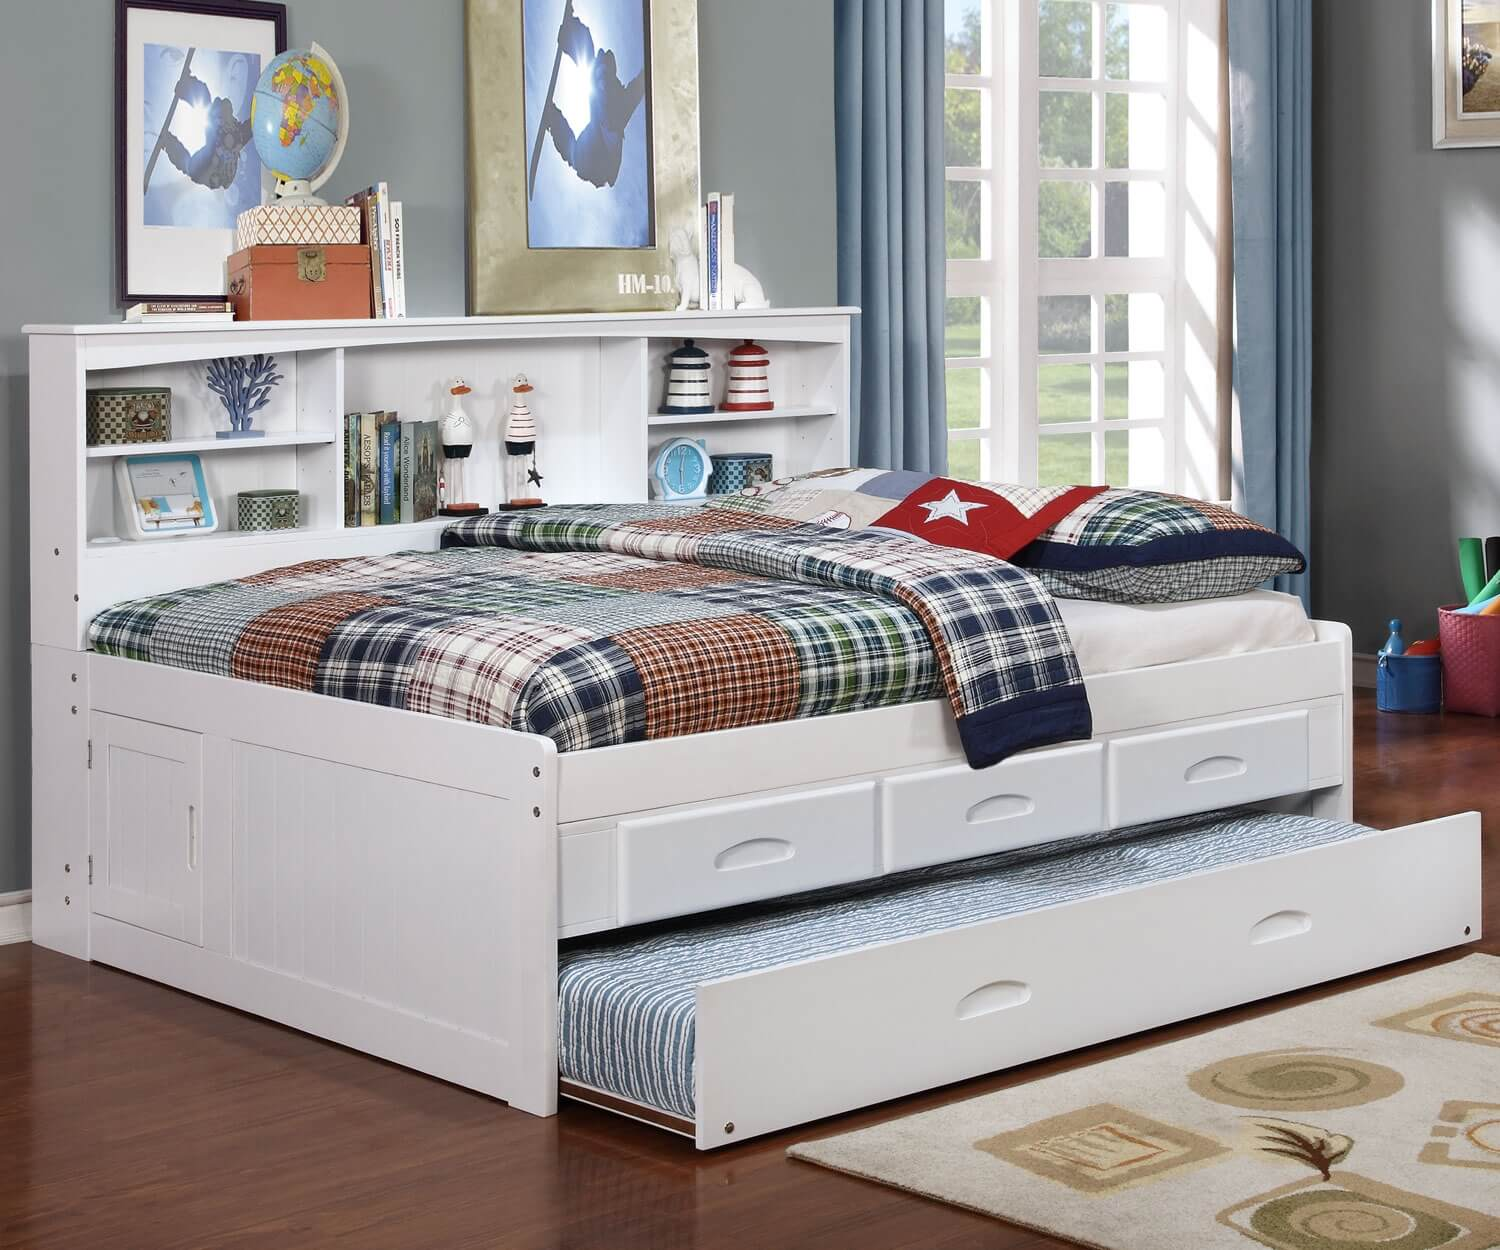 Dwf0223 White Bookcase Daybed